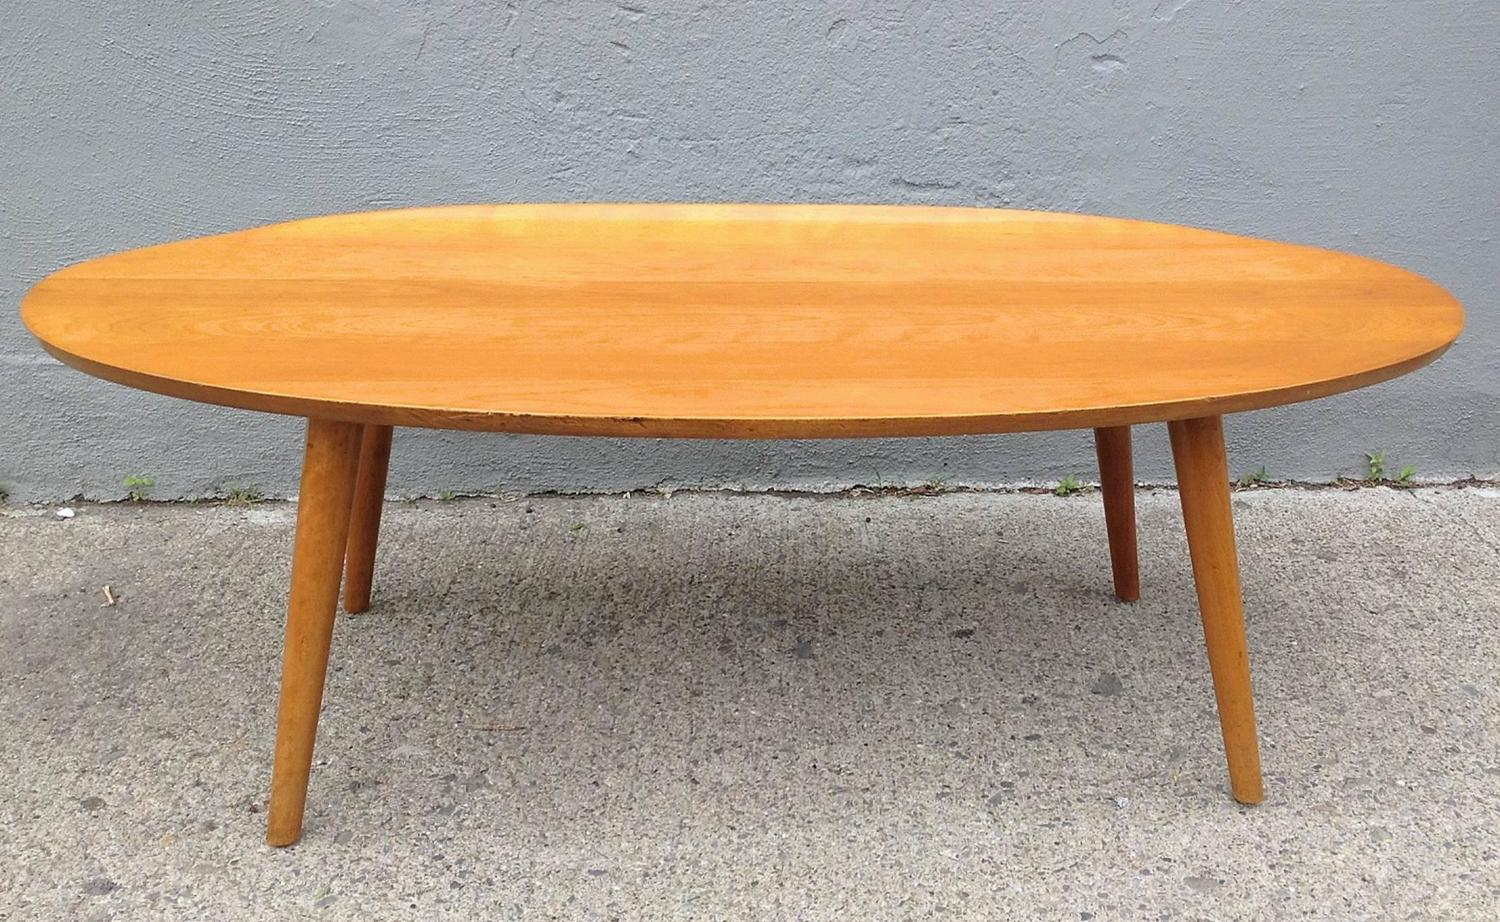 Russel Wright Elliptical Coffee Table With Curled Edge For Sale At